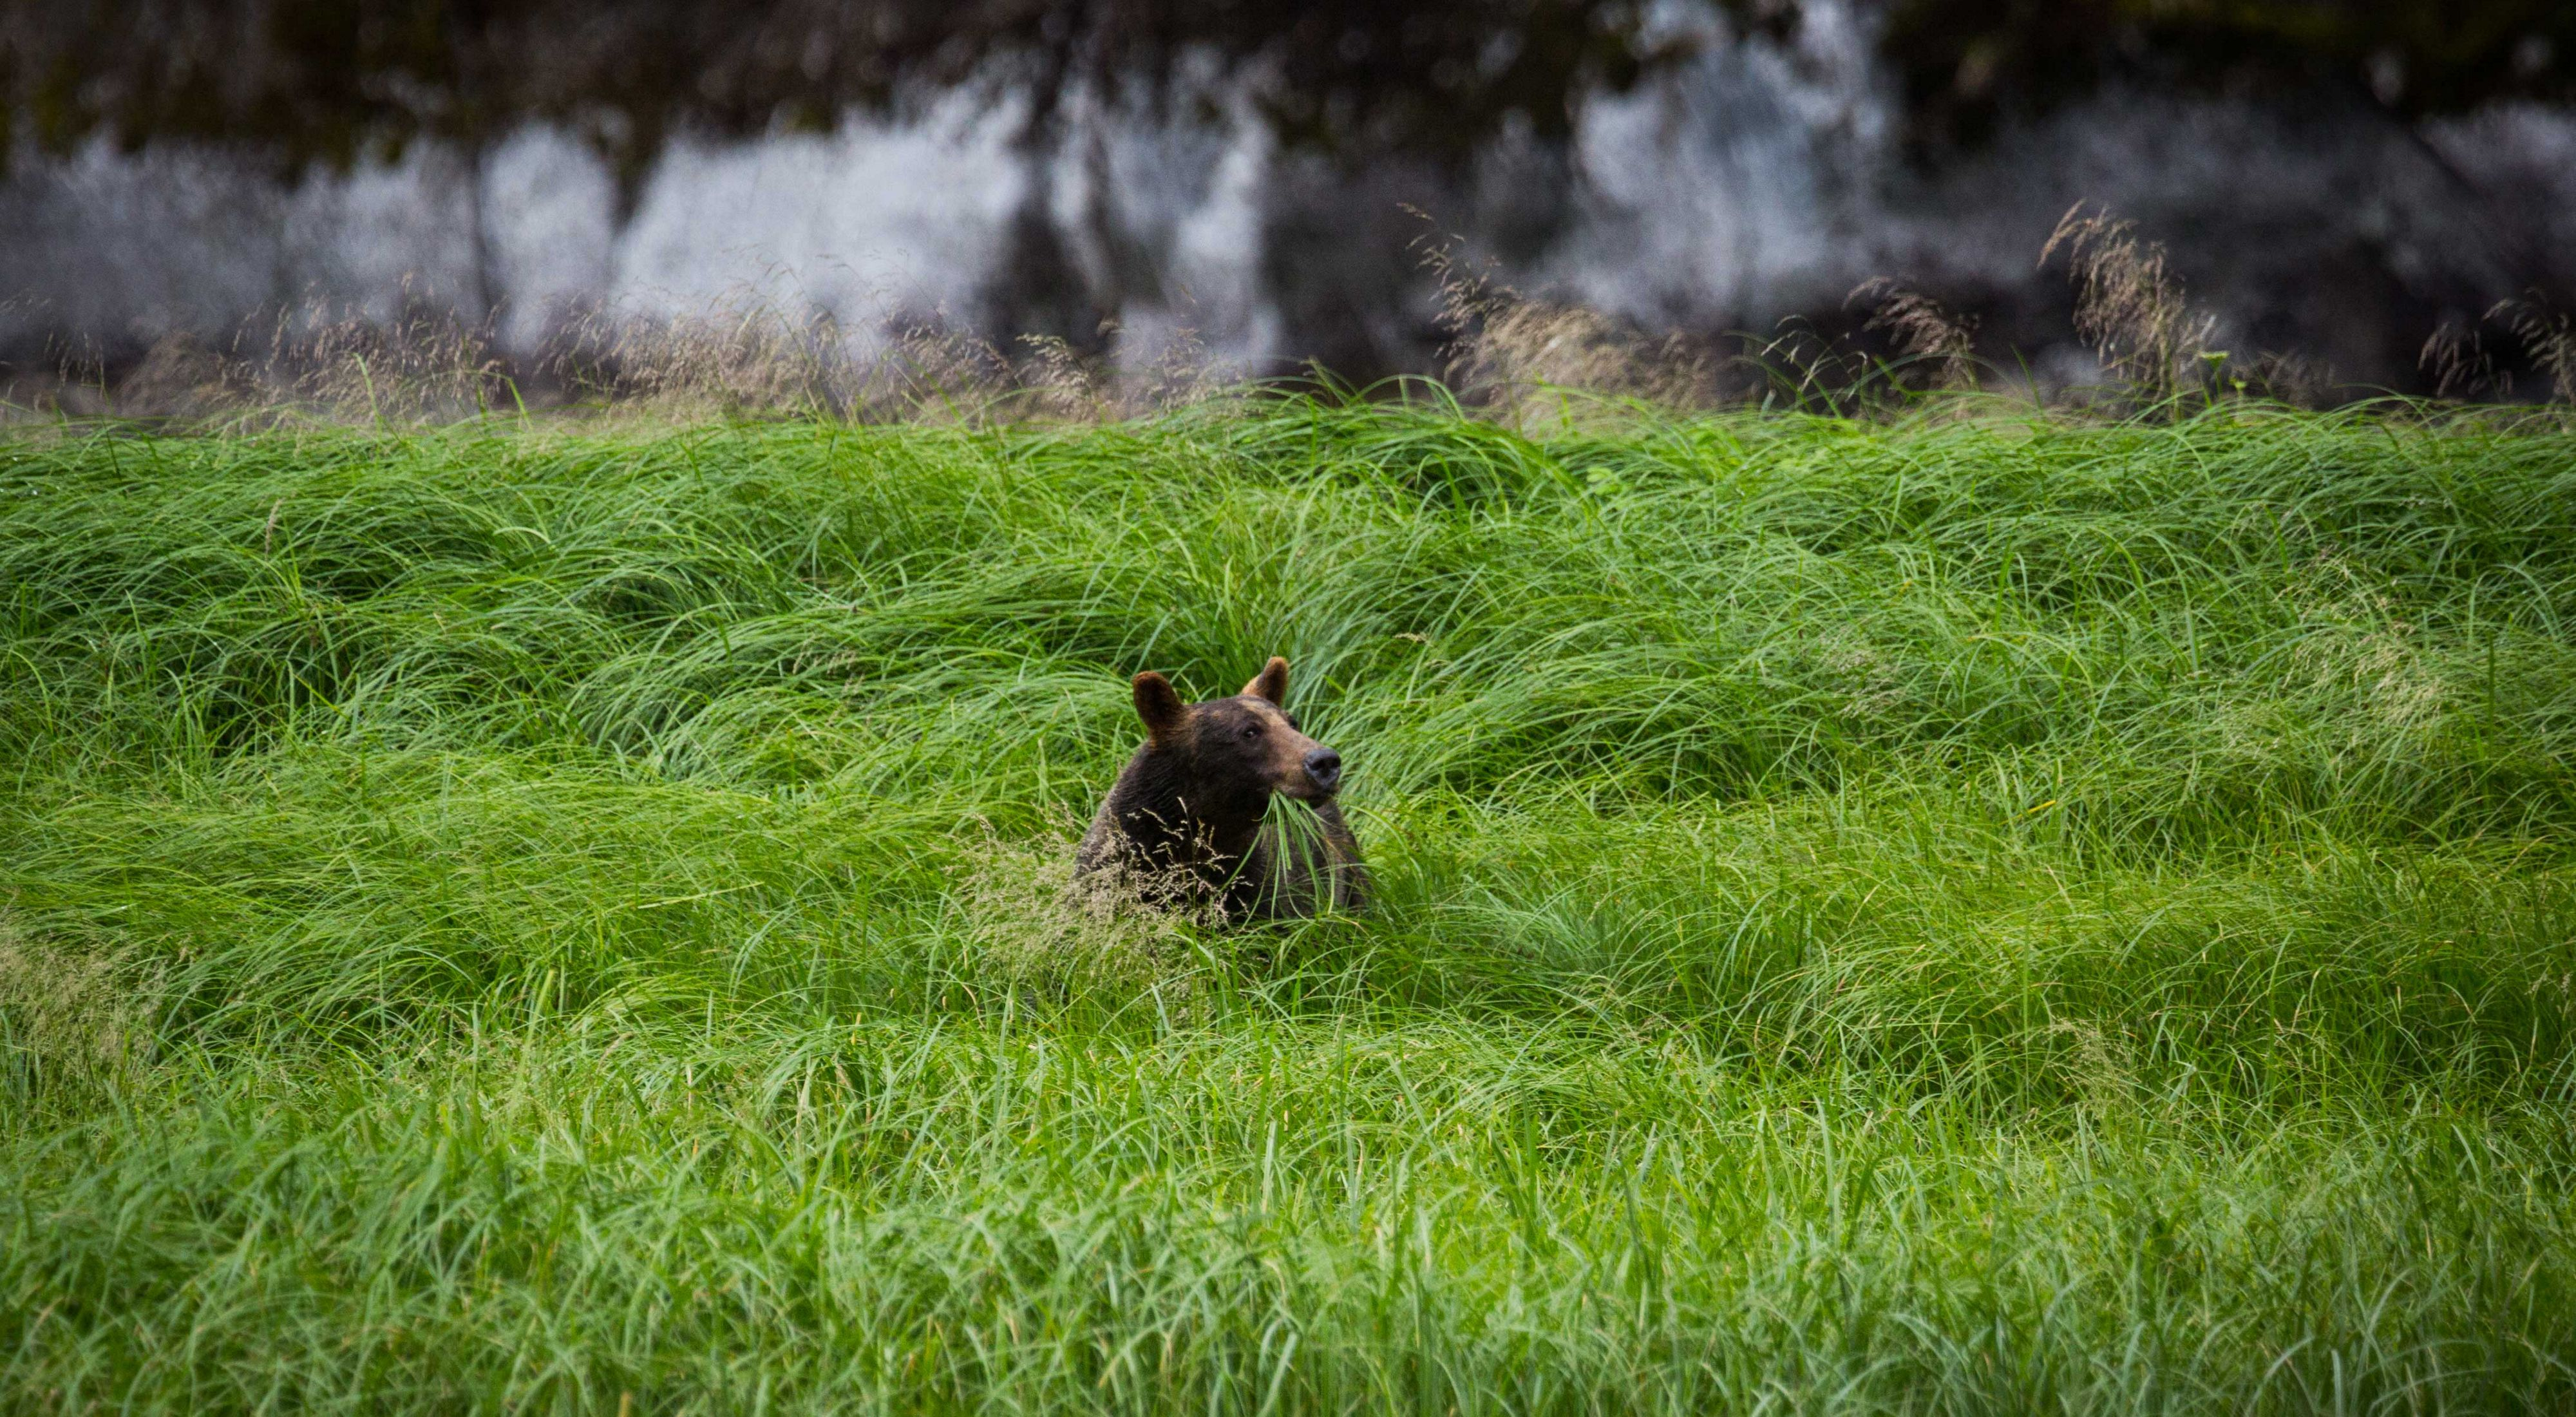 A grizzly eating grass in a field in Mussel Inlet in Great Bear Rainforest, BC.